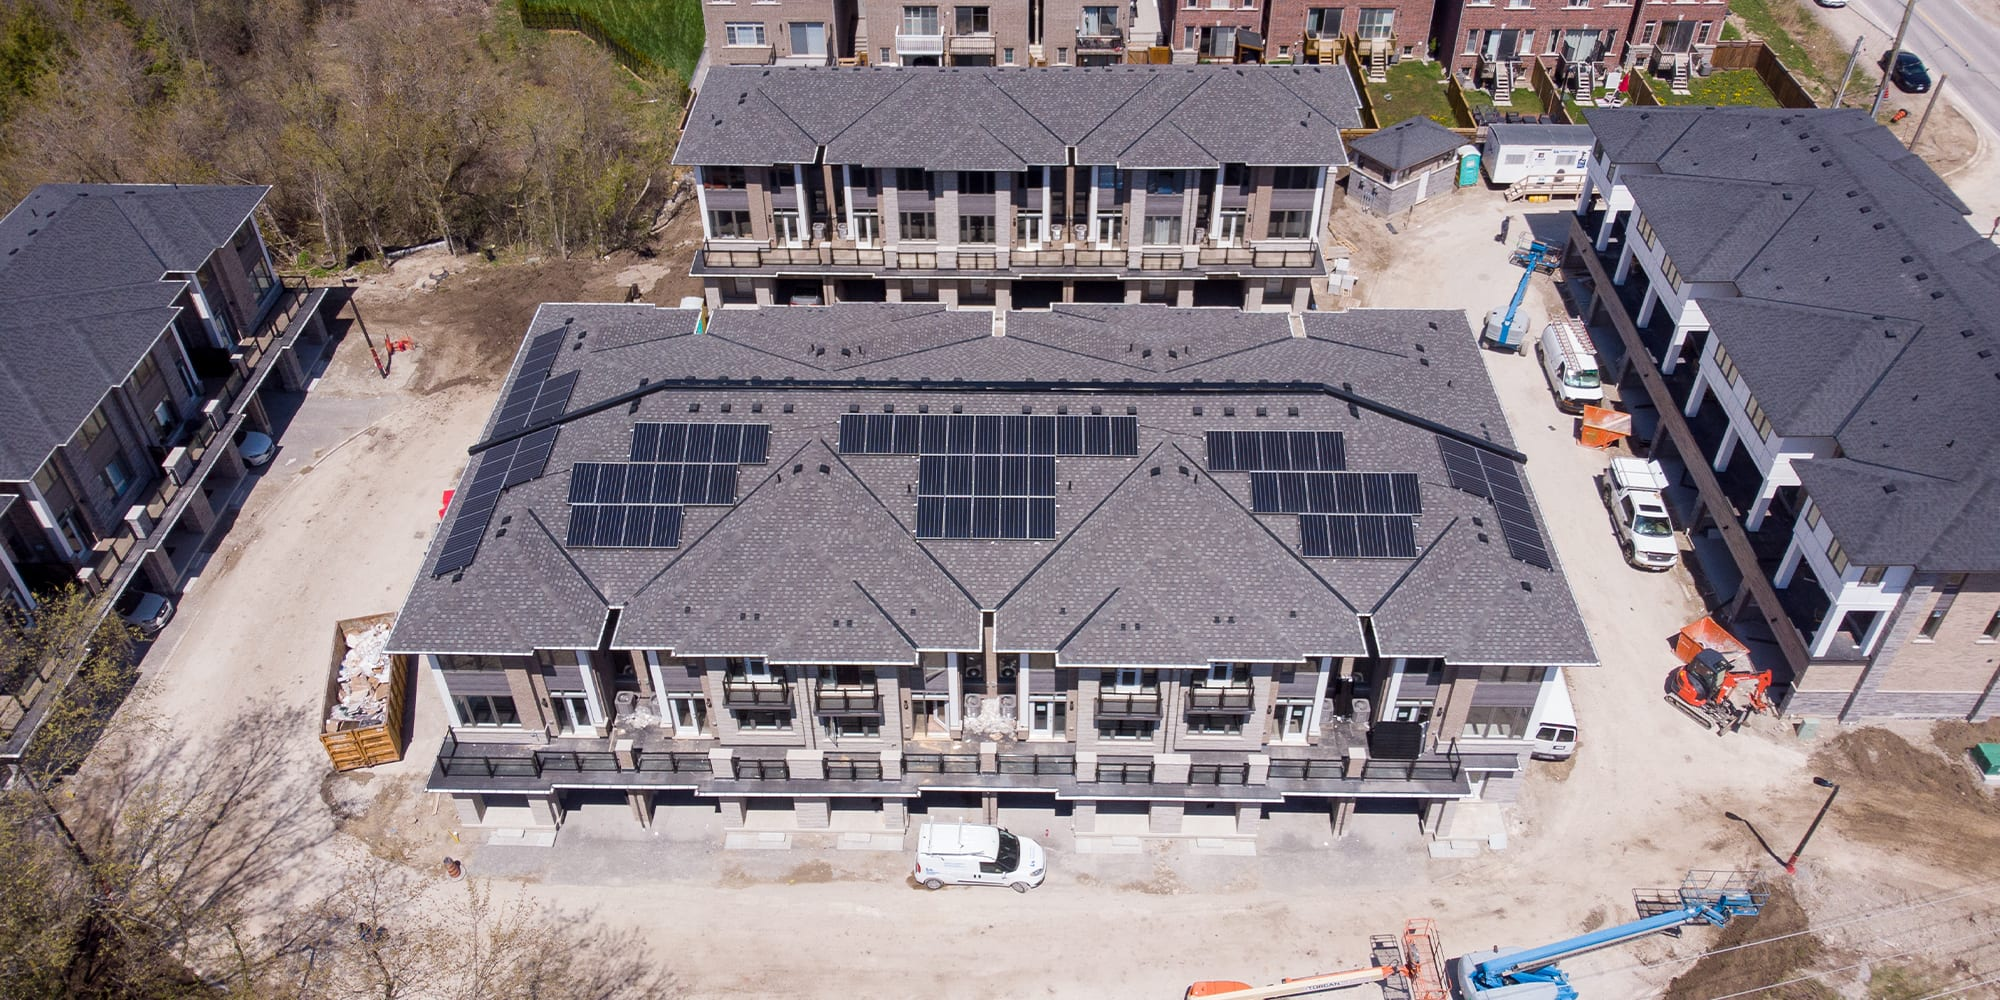 A new housing development in Pickering offers a glimpse into the future of green energy